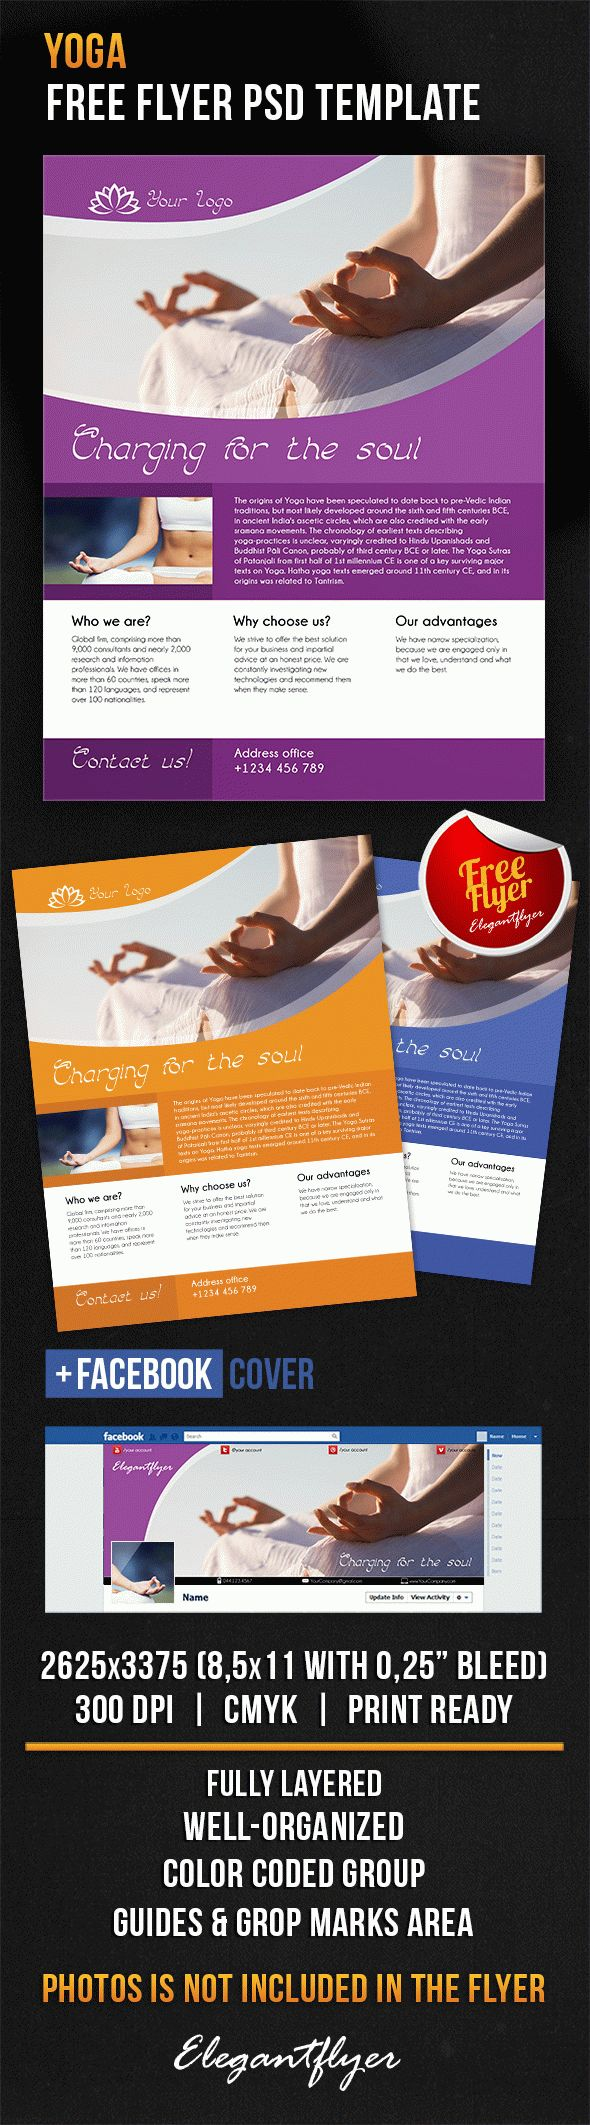 Free Poster For Yoga Poses By Elegantflyer